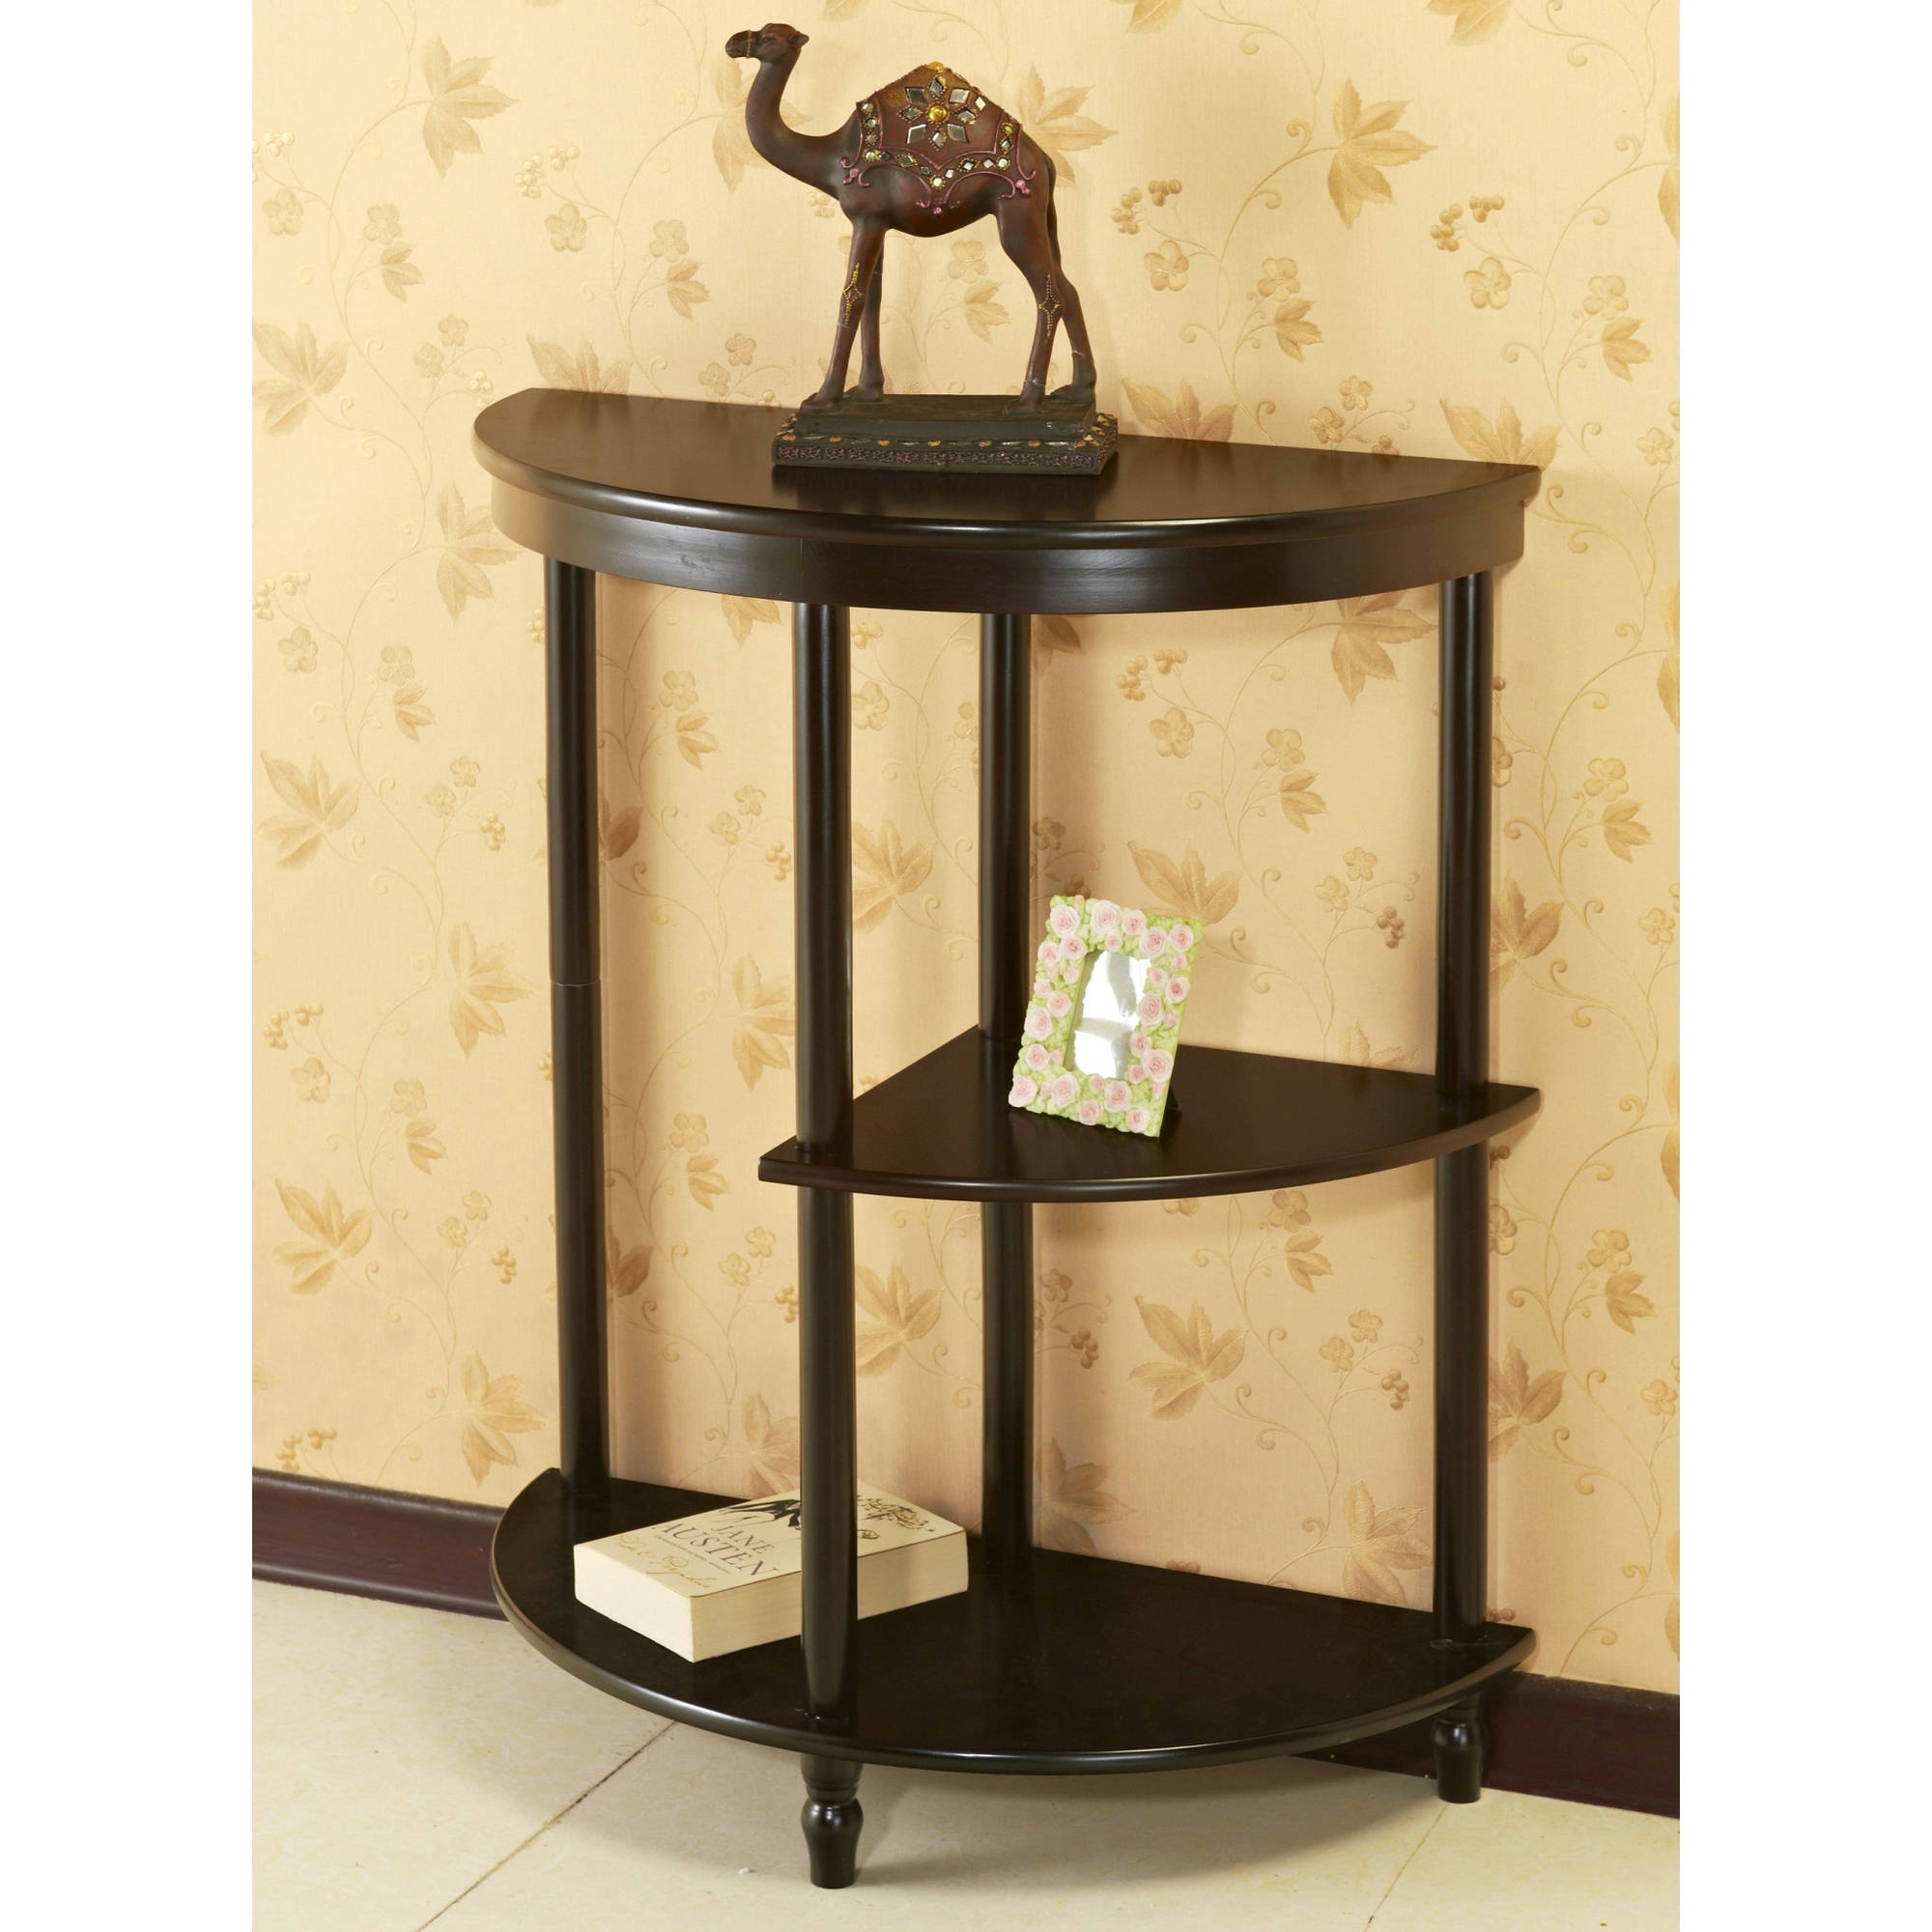 winsome wood concord half moon console table drawer walnut small accent entryway sofa dale tiffany aldridge lamp with storage wicker garden chairs ikea tablecloths and napkins